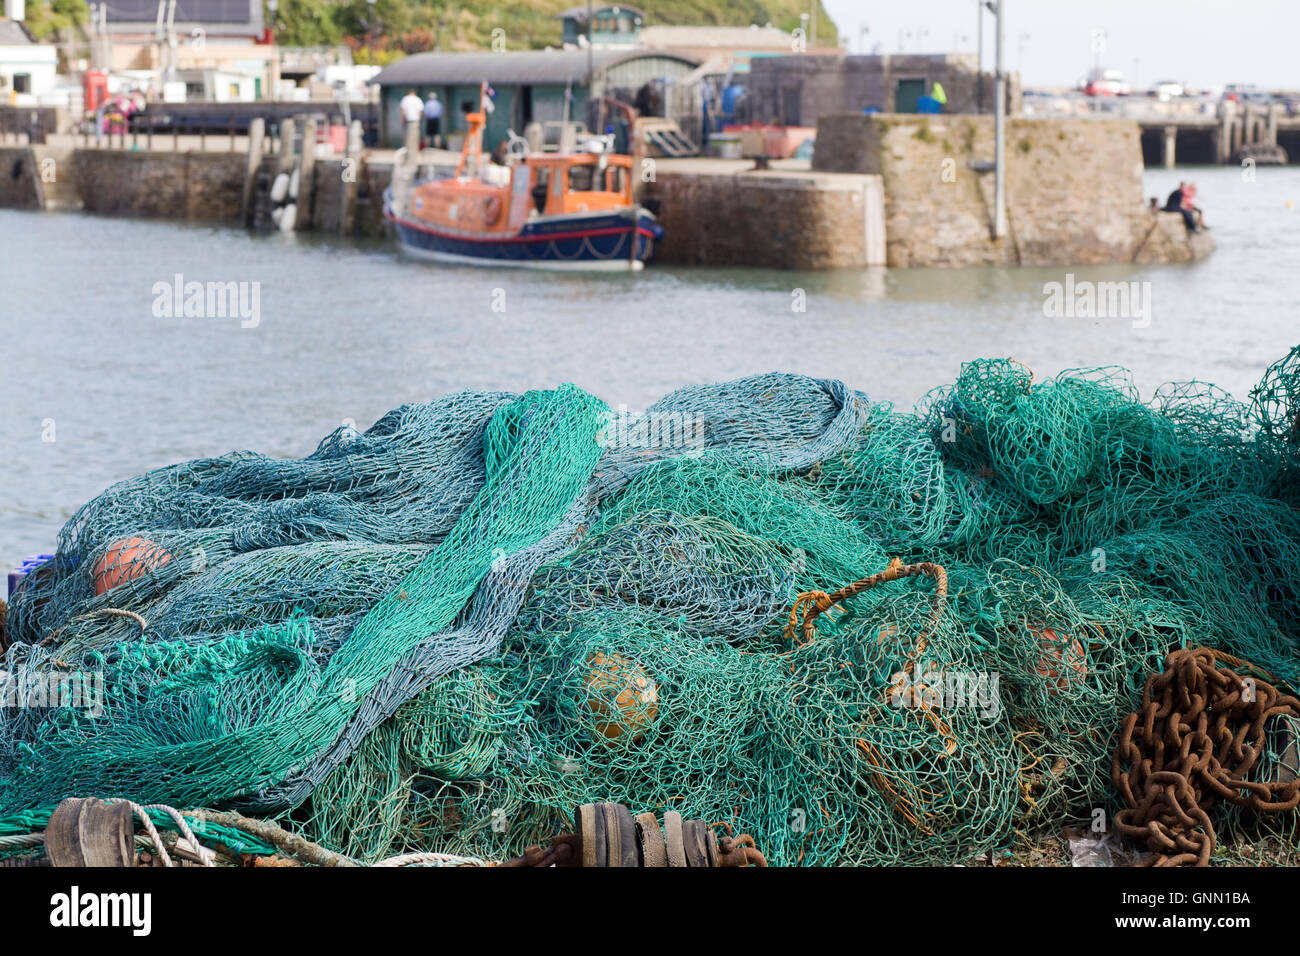 commercial fishing equipment in the harbor Stock Photo